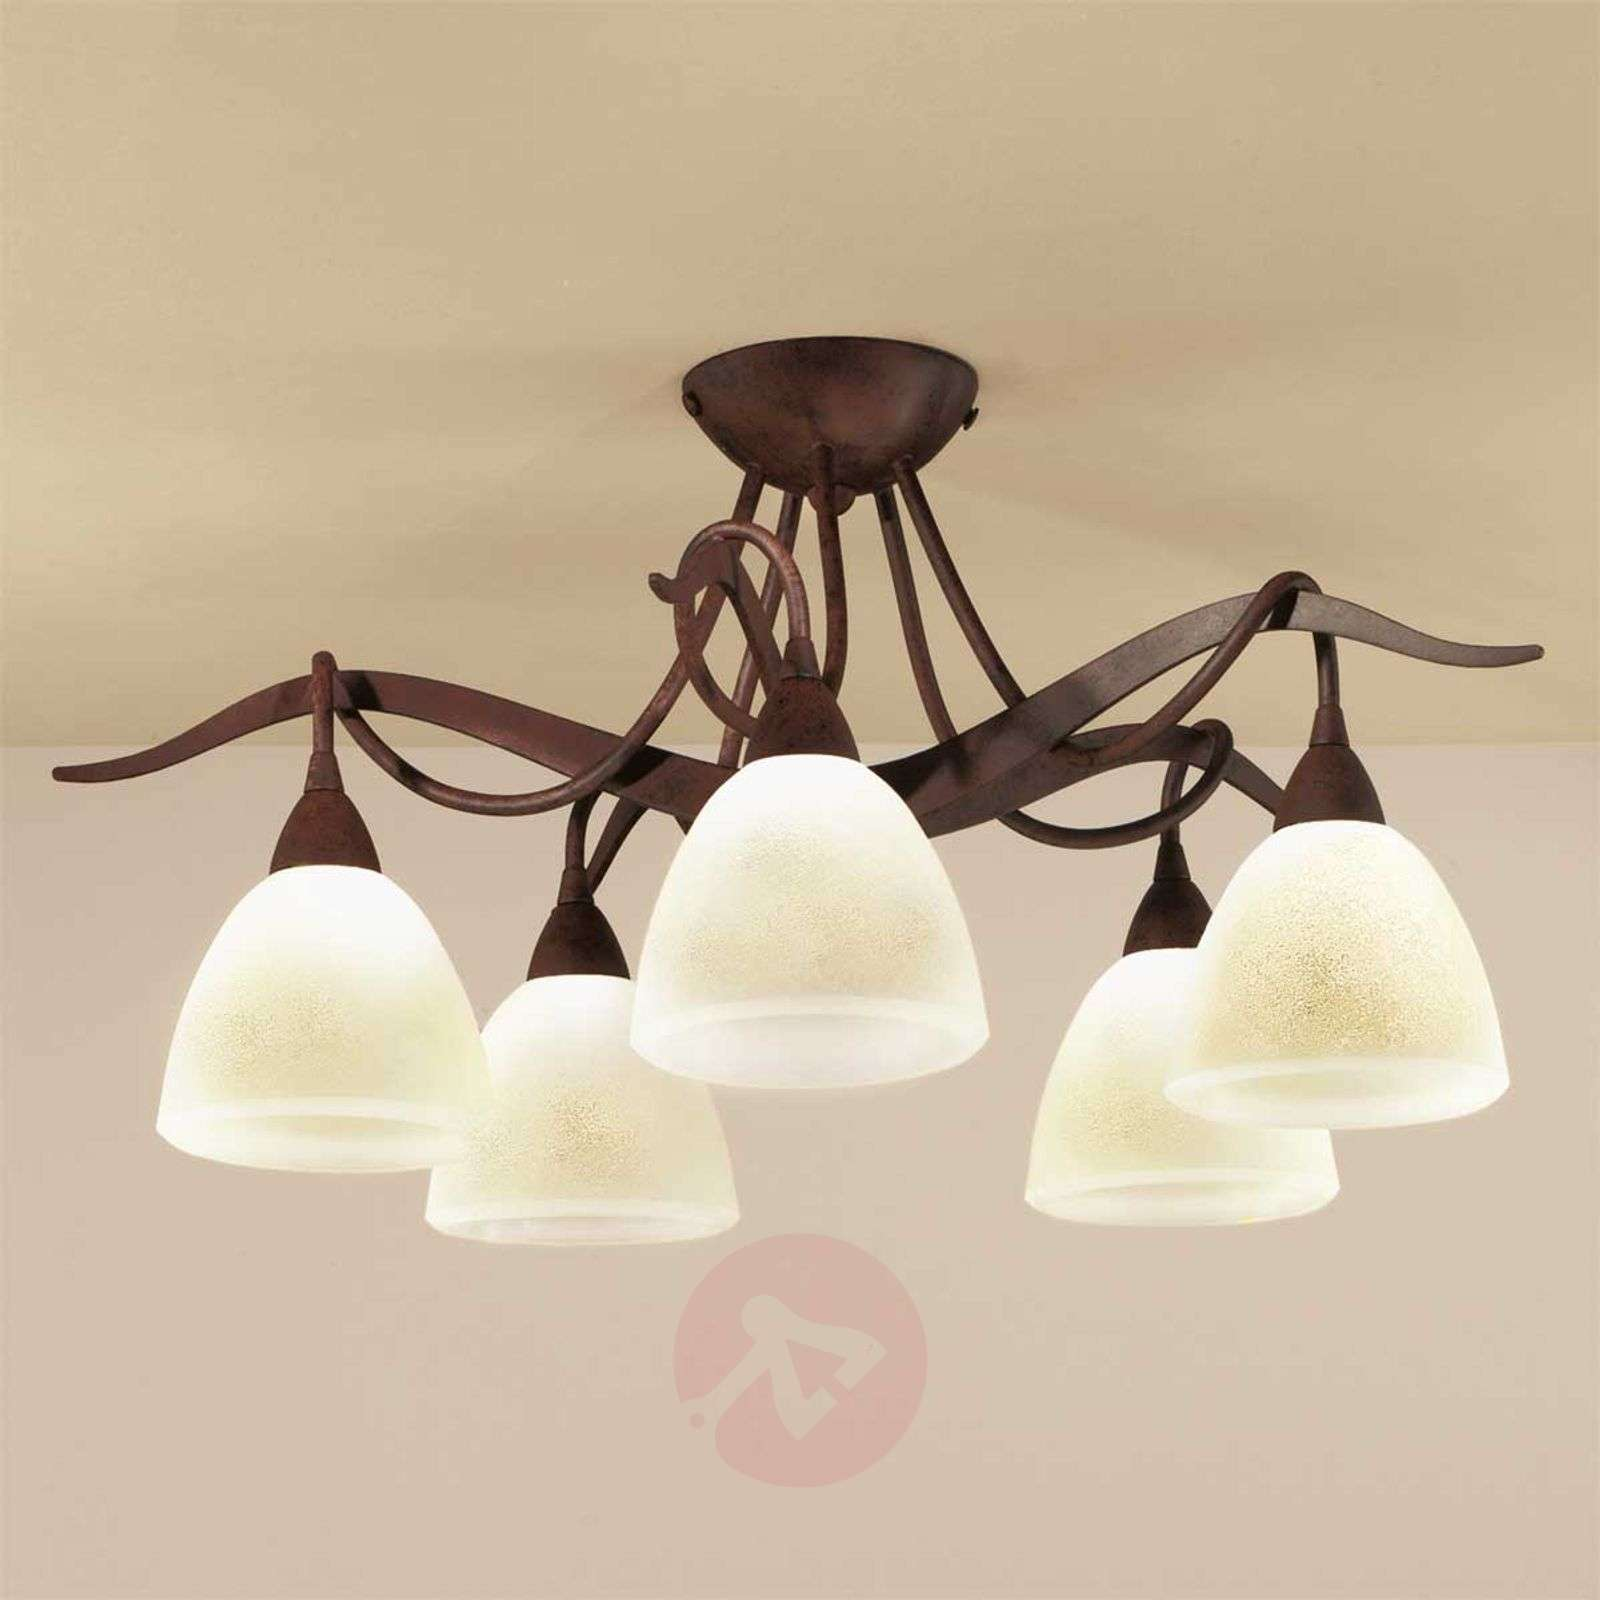 Wa S Leading Supplier Of High Quality Ceiling: Country House Ceiling Light Samuele